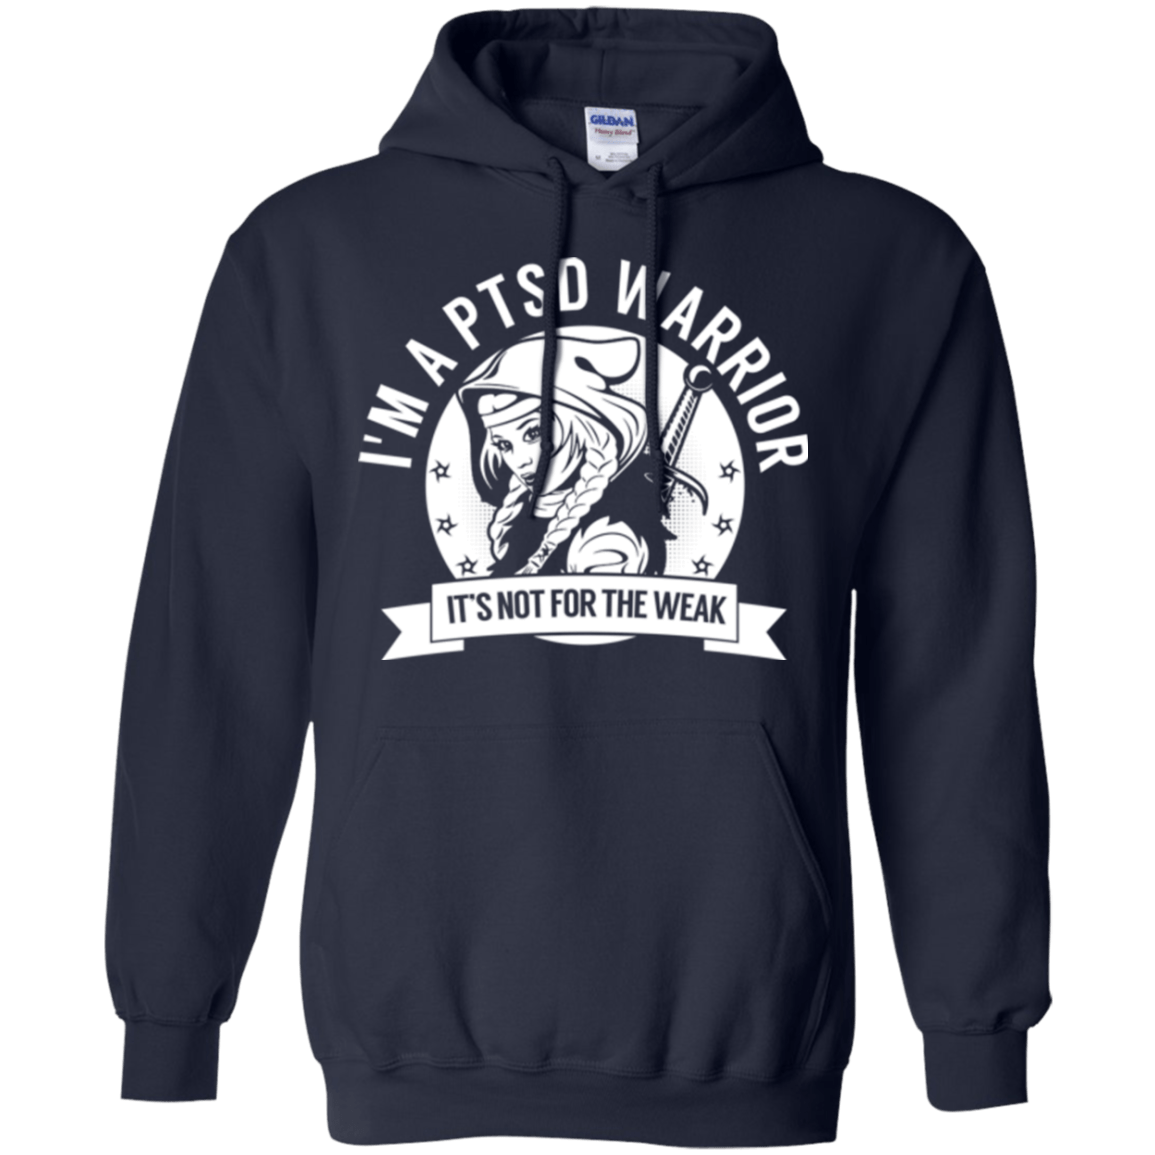 Sweatshirts - Post Traumatic Stress Disorder - PTSD Warrior Hooded Pullover Hoodie 8 Oz.